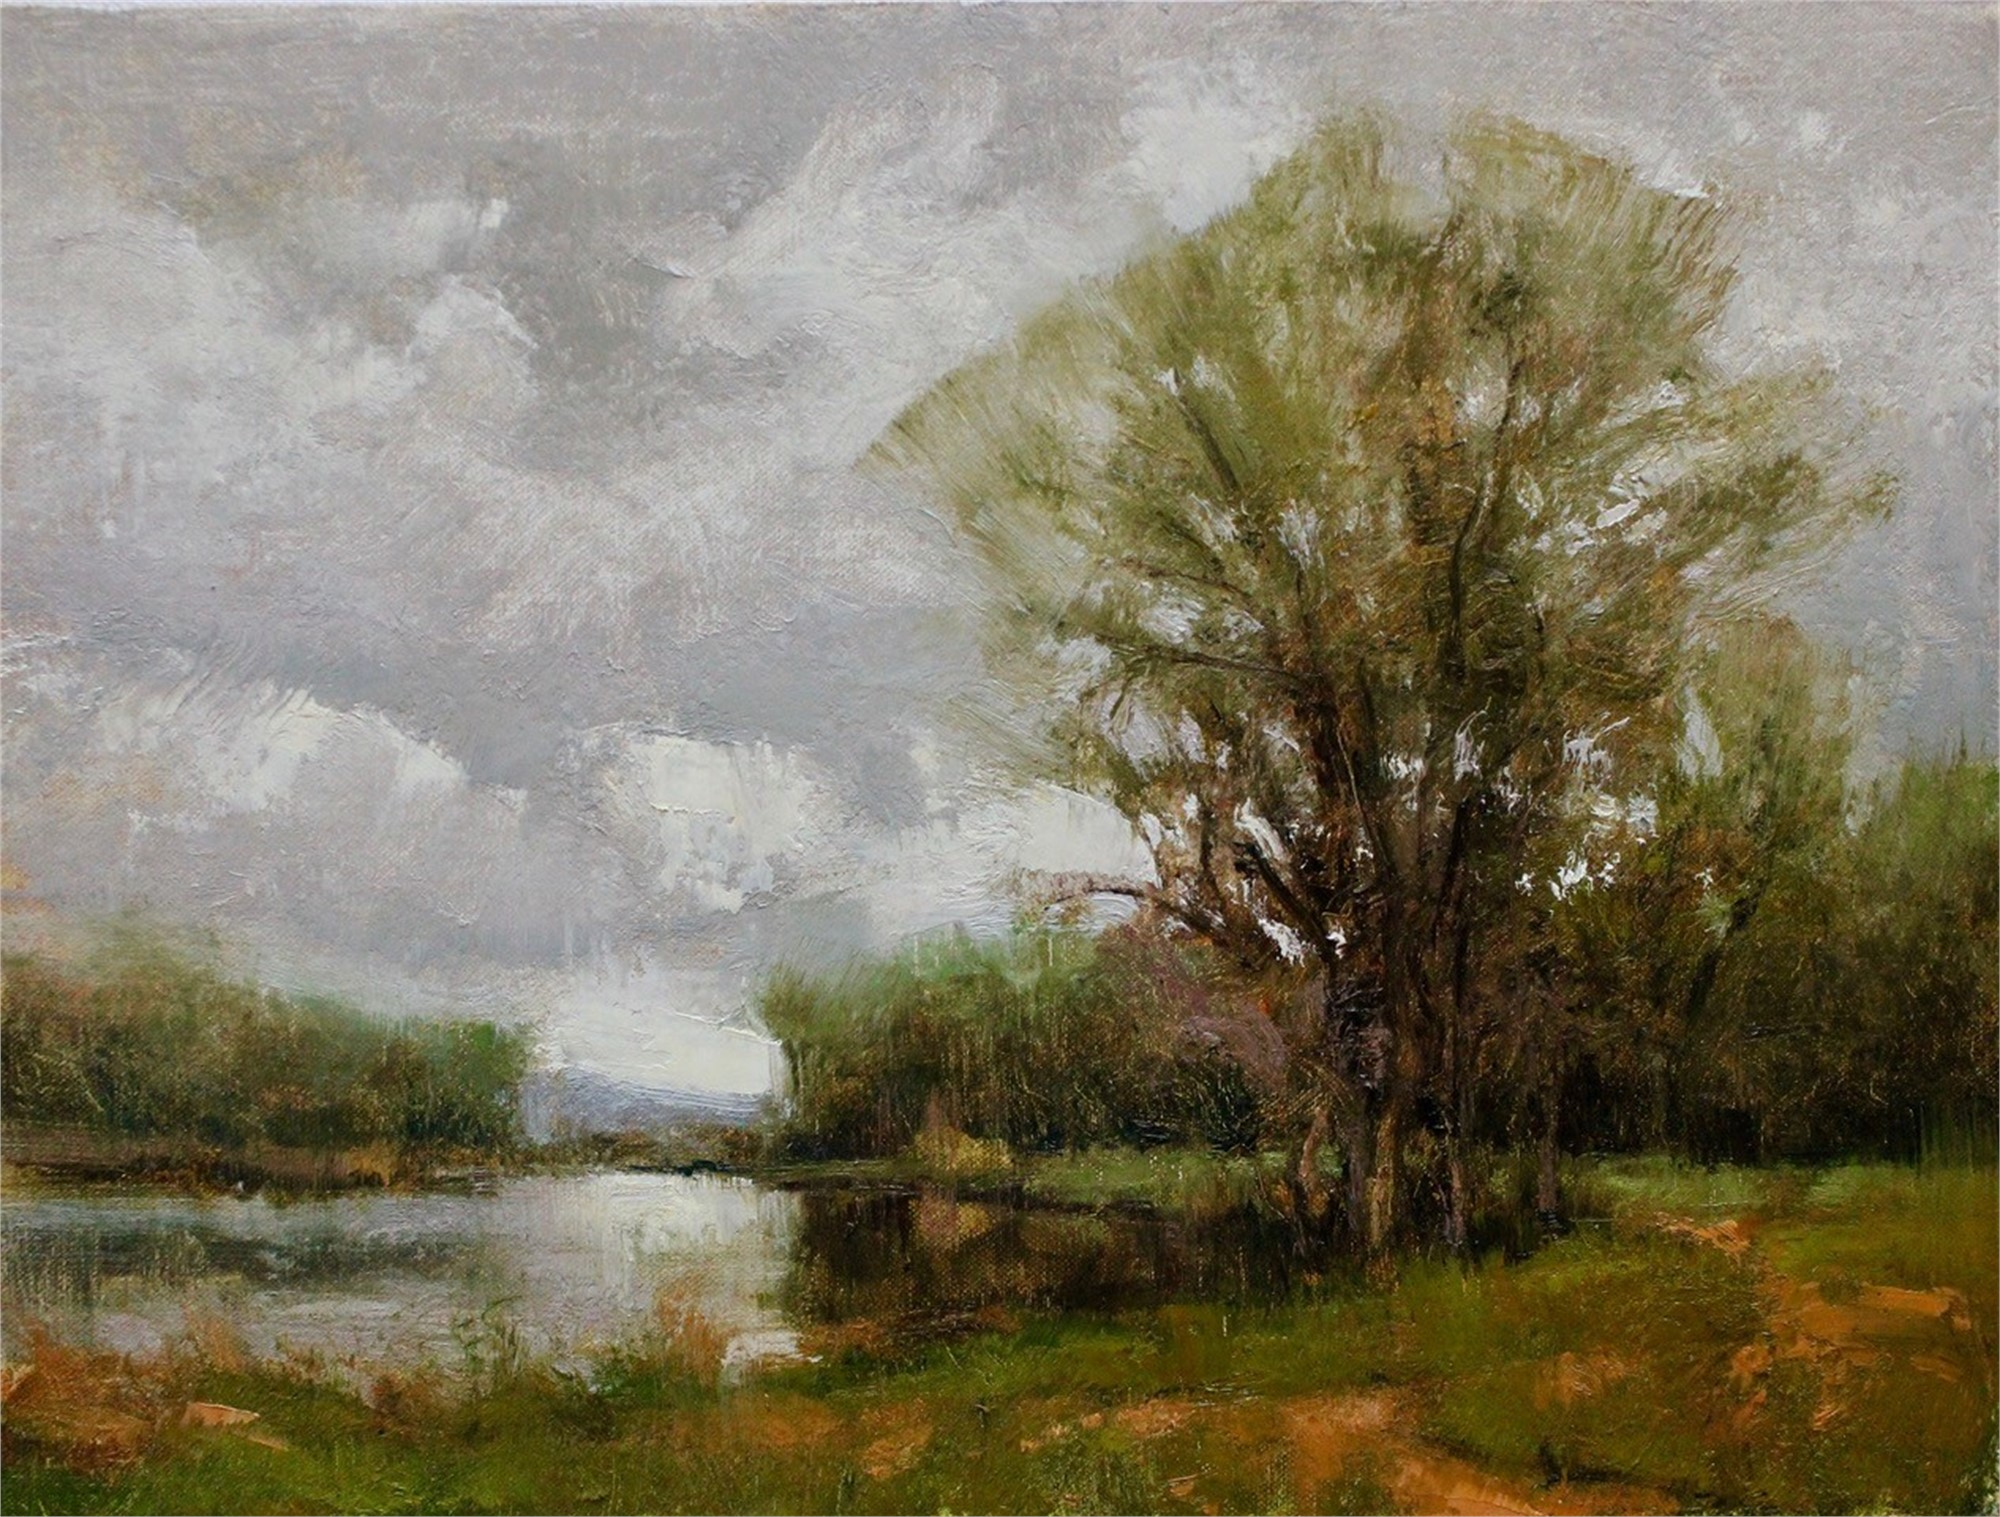 Spring Grey by Michael J Lynch